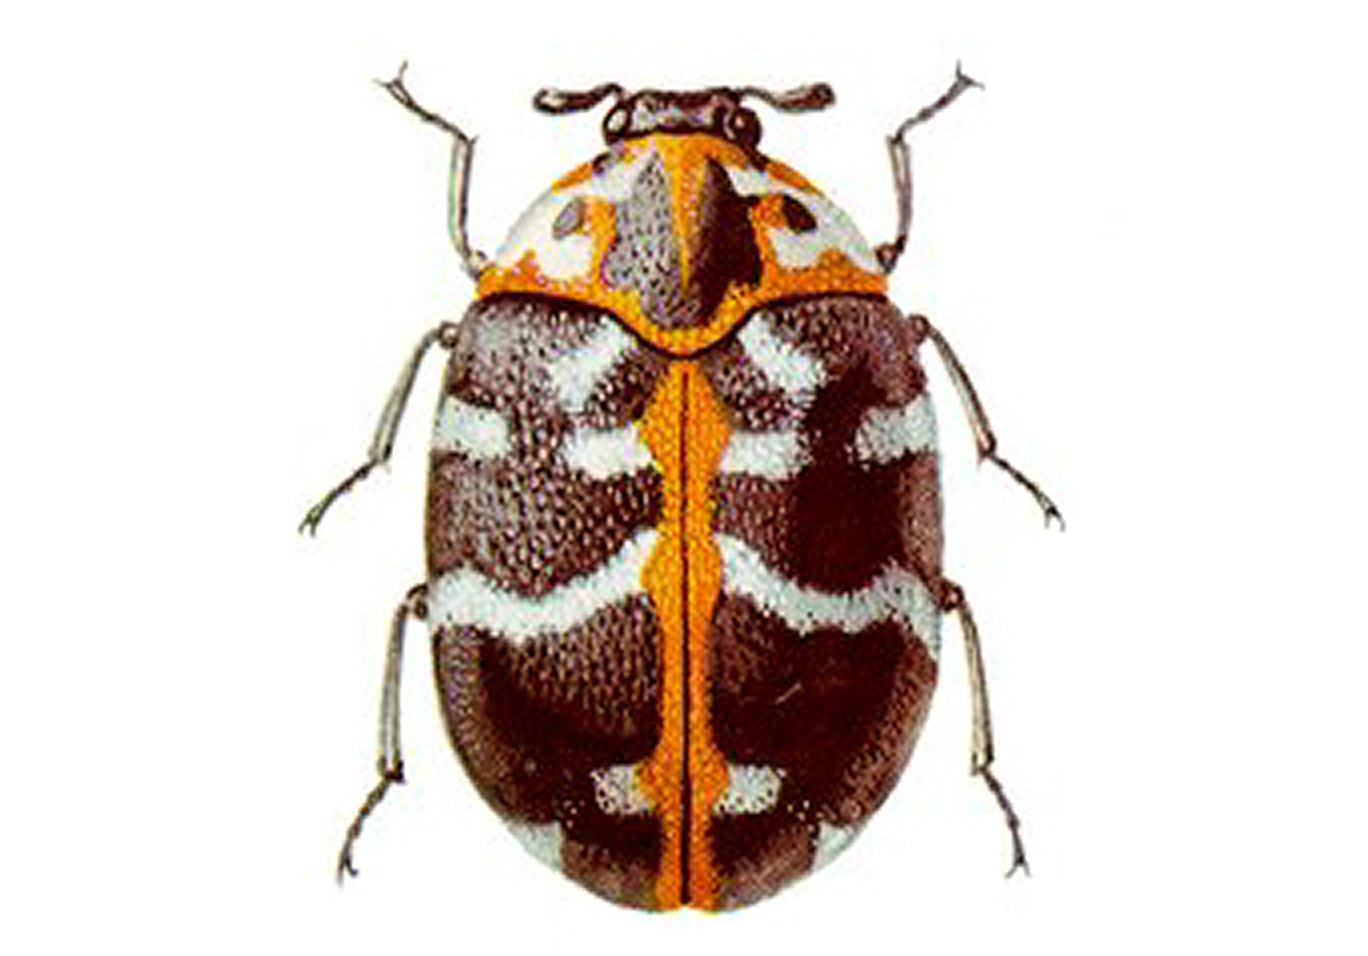 insect essay They come in many different colors and patterns, but the most familiar in north america is the seven-spotted ladybug,  insect life span 2 to 3 years diet omnivore.